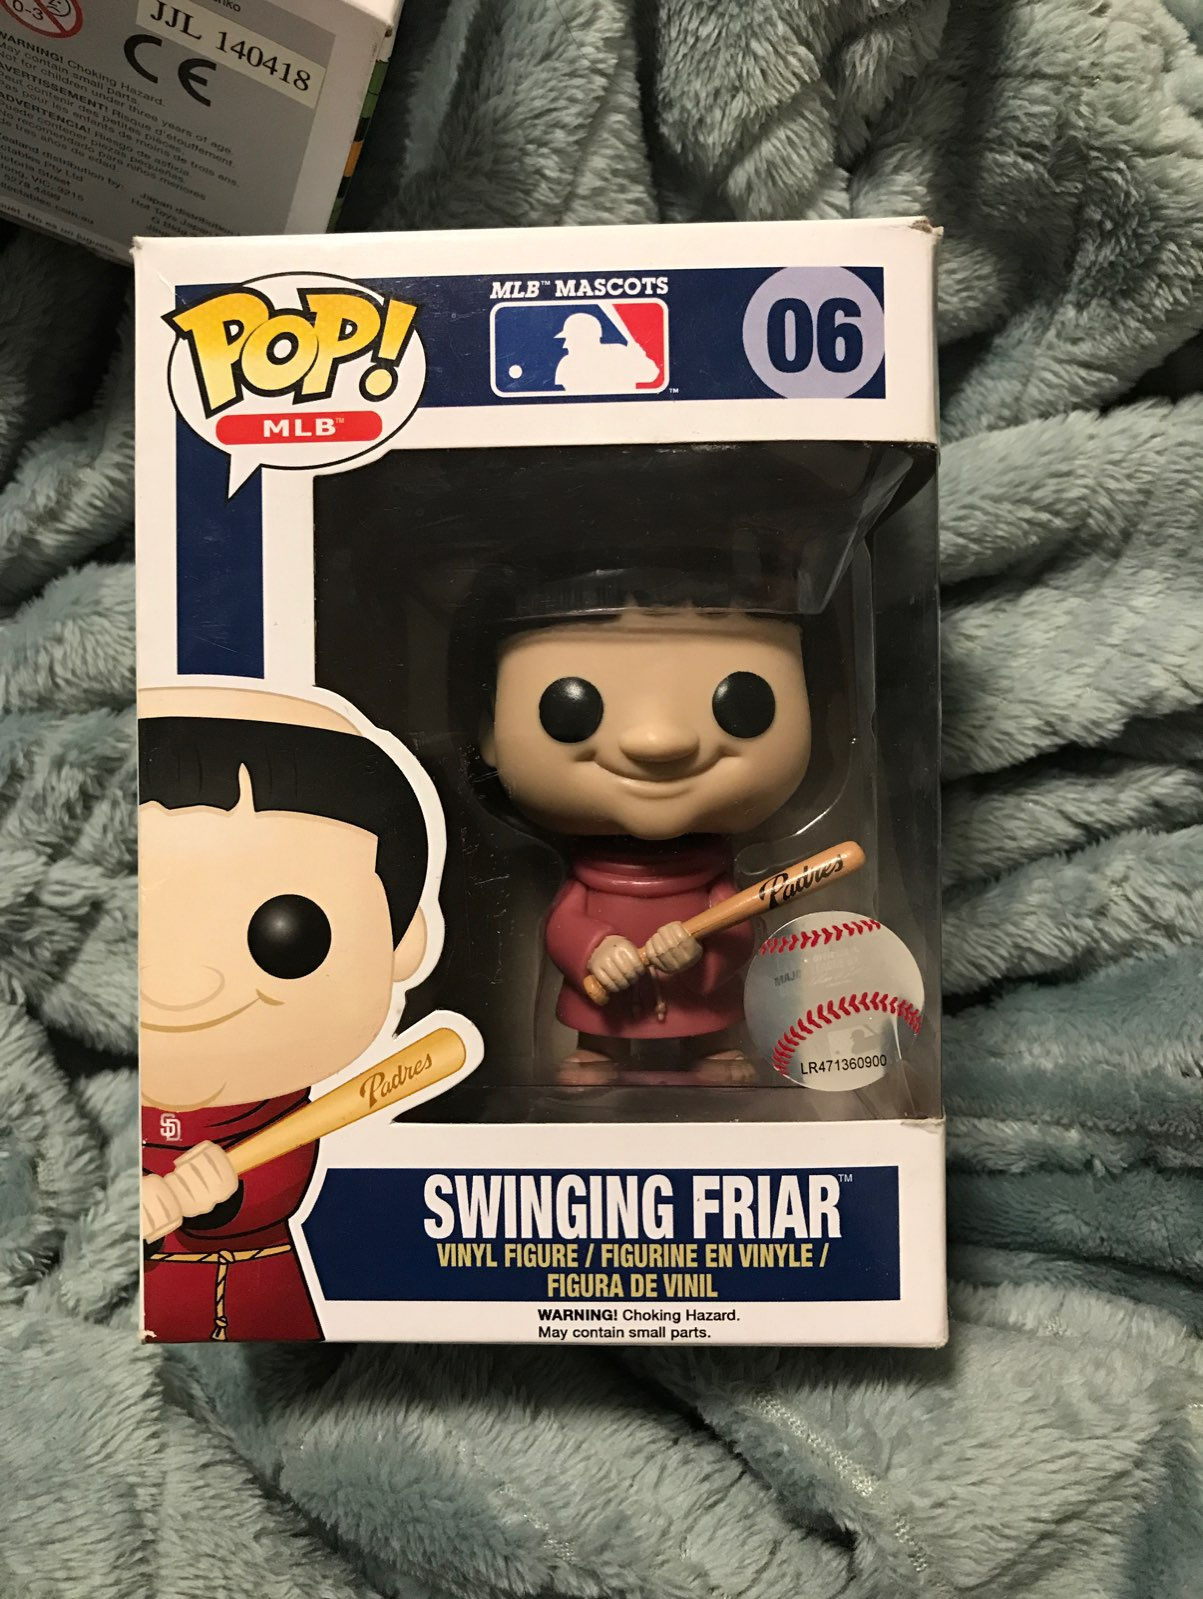 Swinging Friar Funko Pop